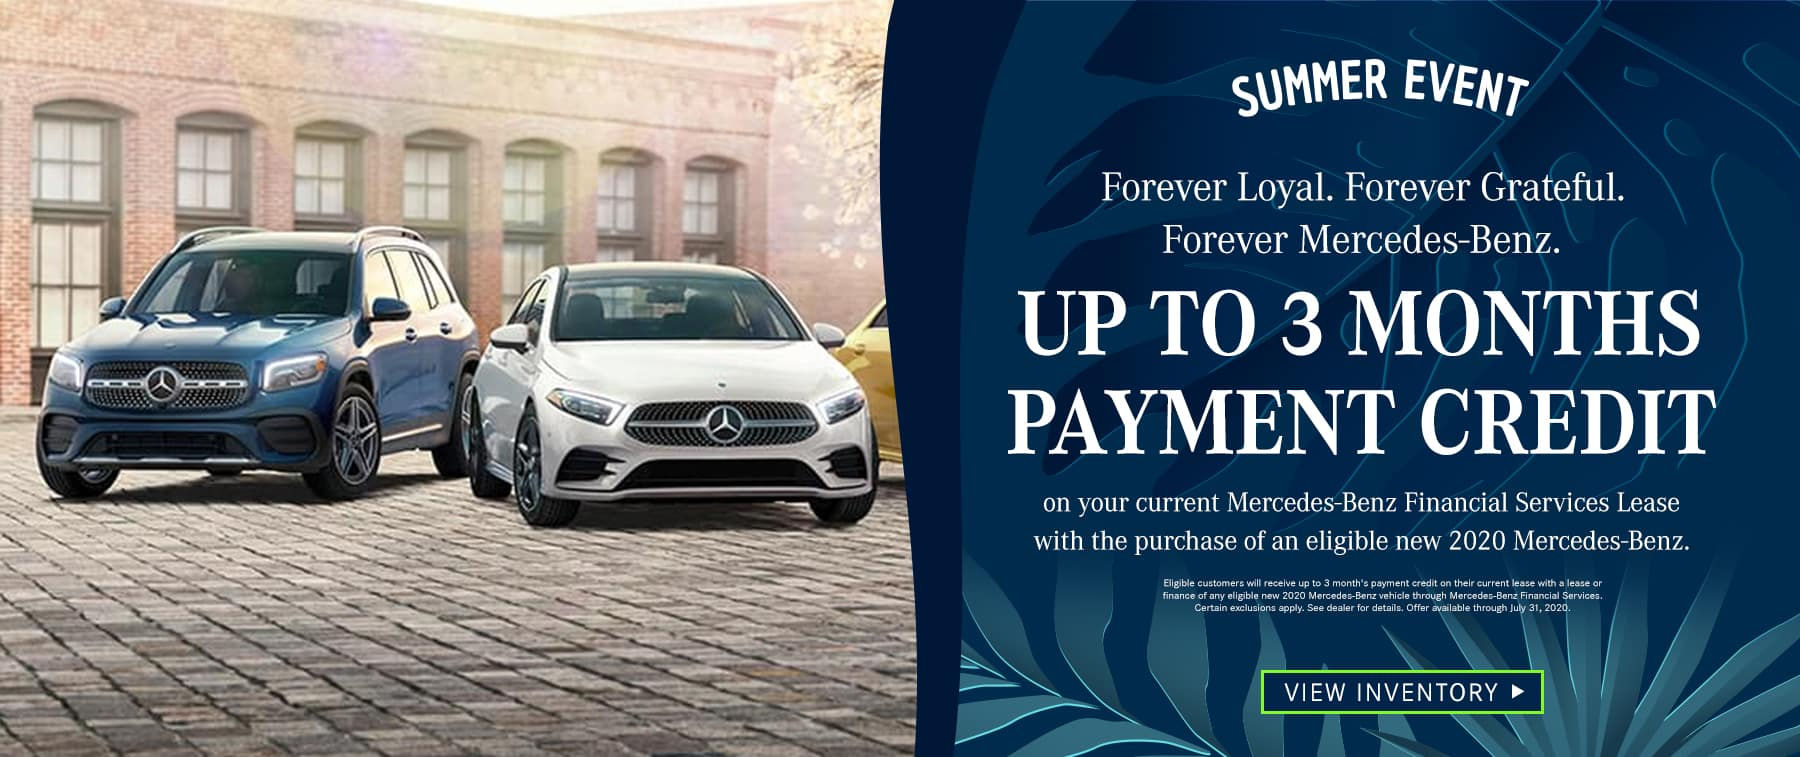 Up to 3 Months Payment Credit on your current Mercedes-Benz Financial Services Lease with the purchase of an eligible new 2020 Mercedes- Benz